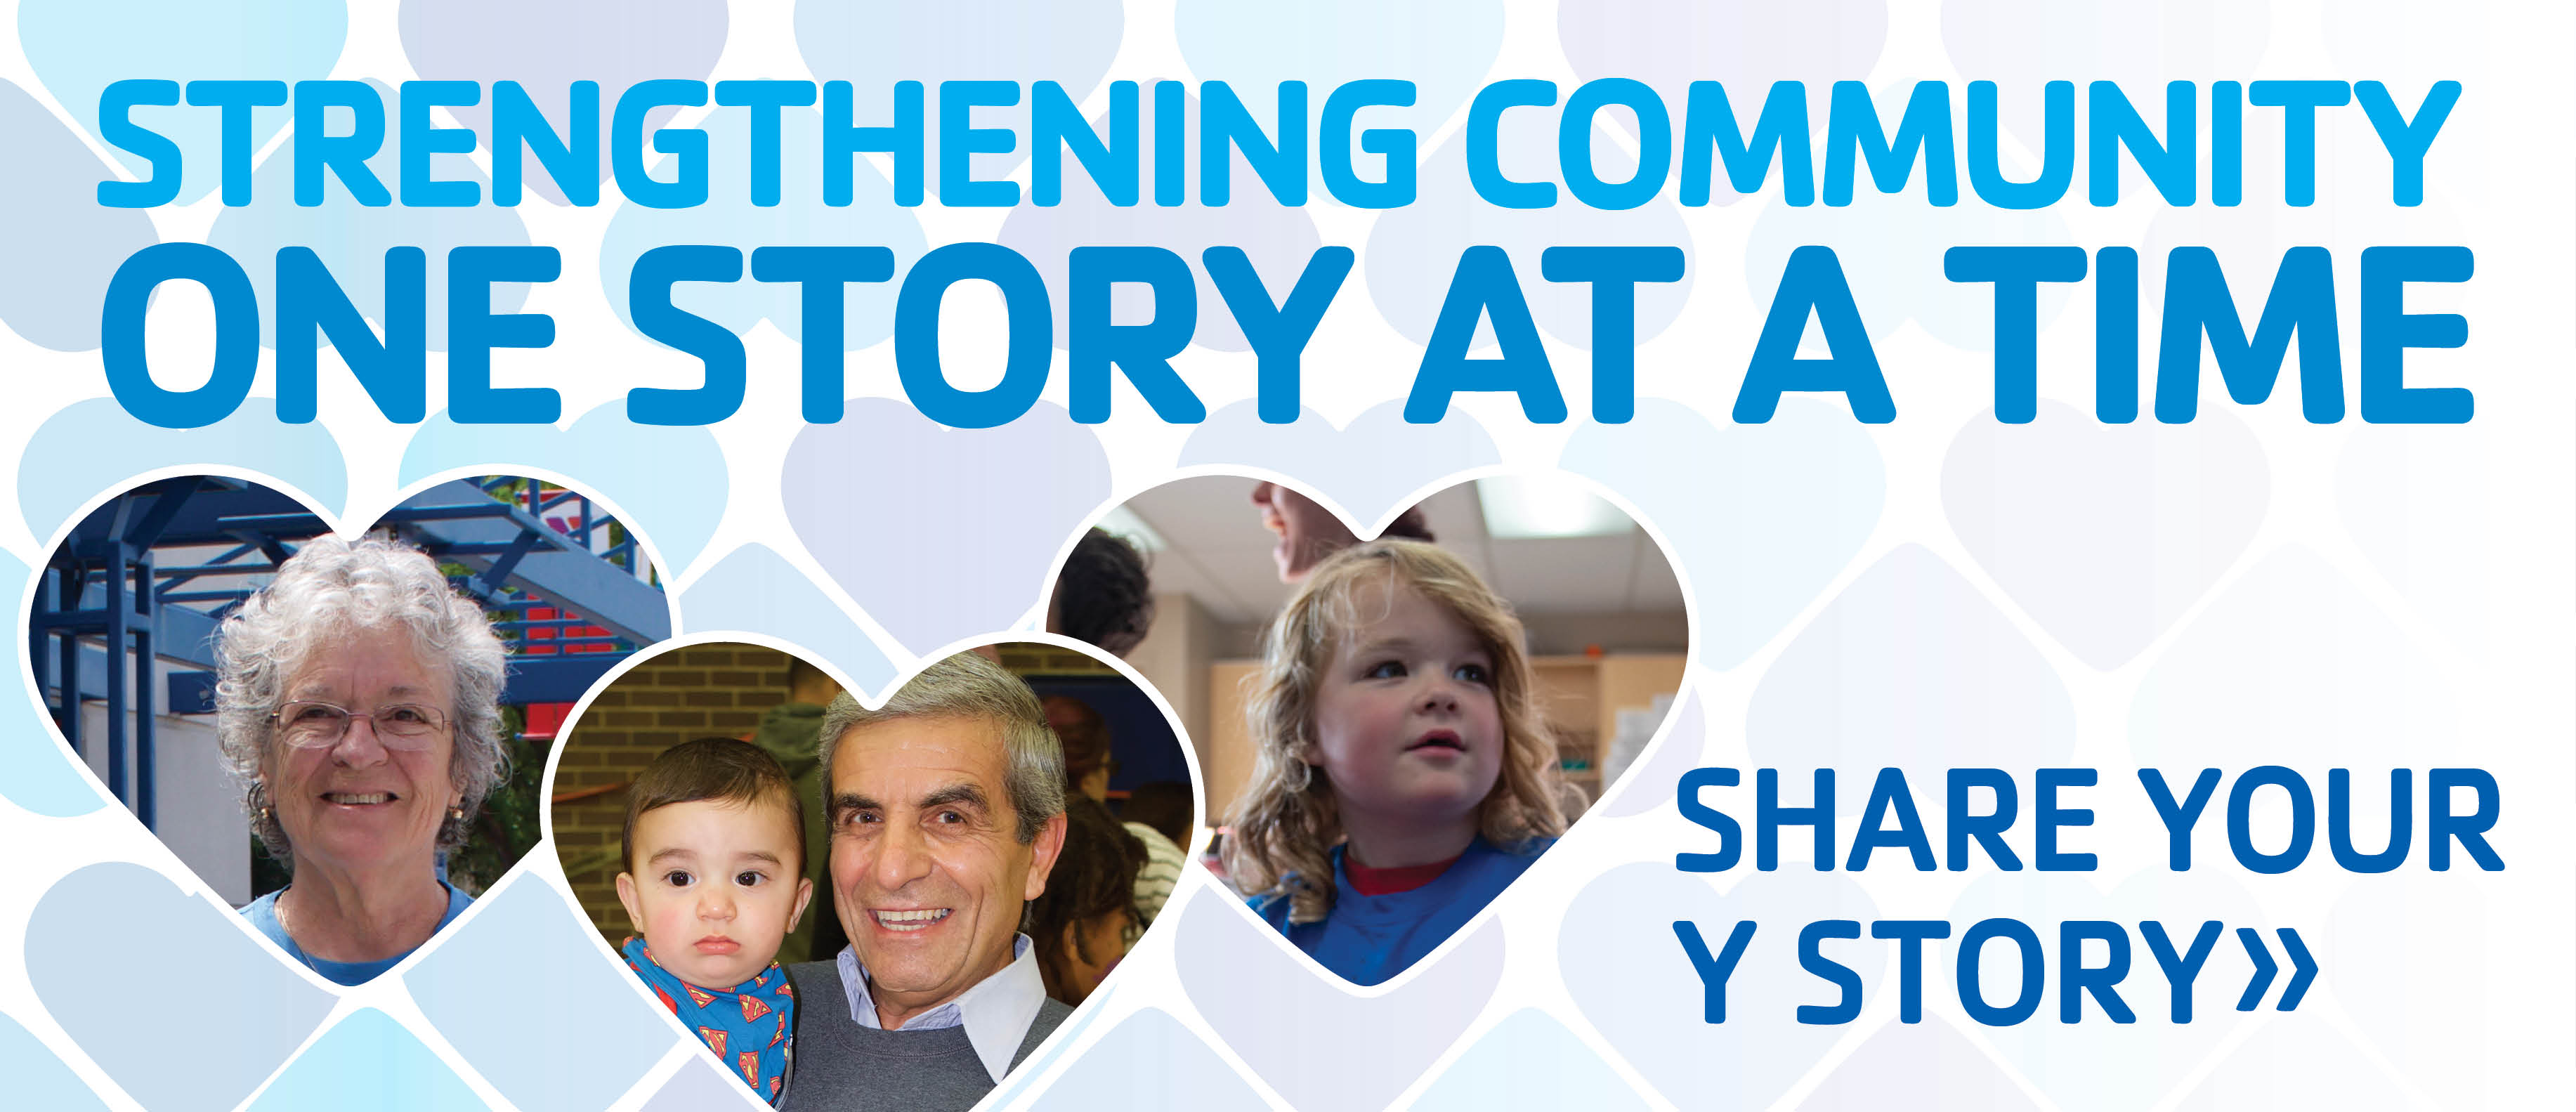 Strengthening Community One Story at a Time - Share Your Y Story Here